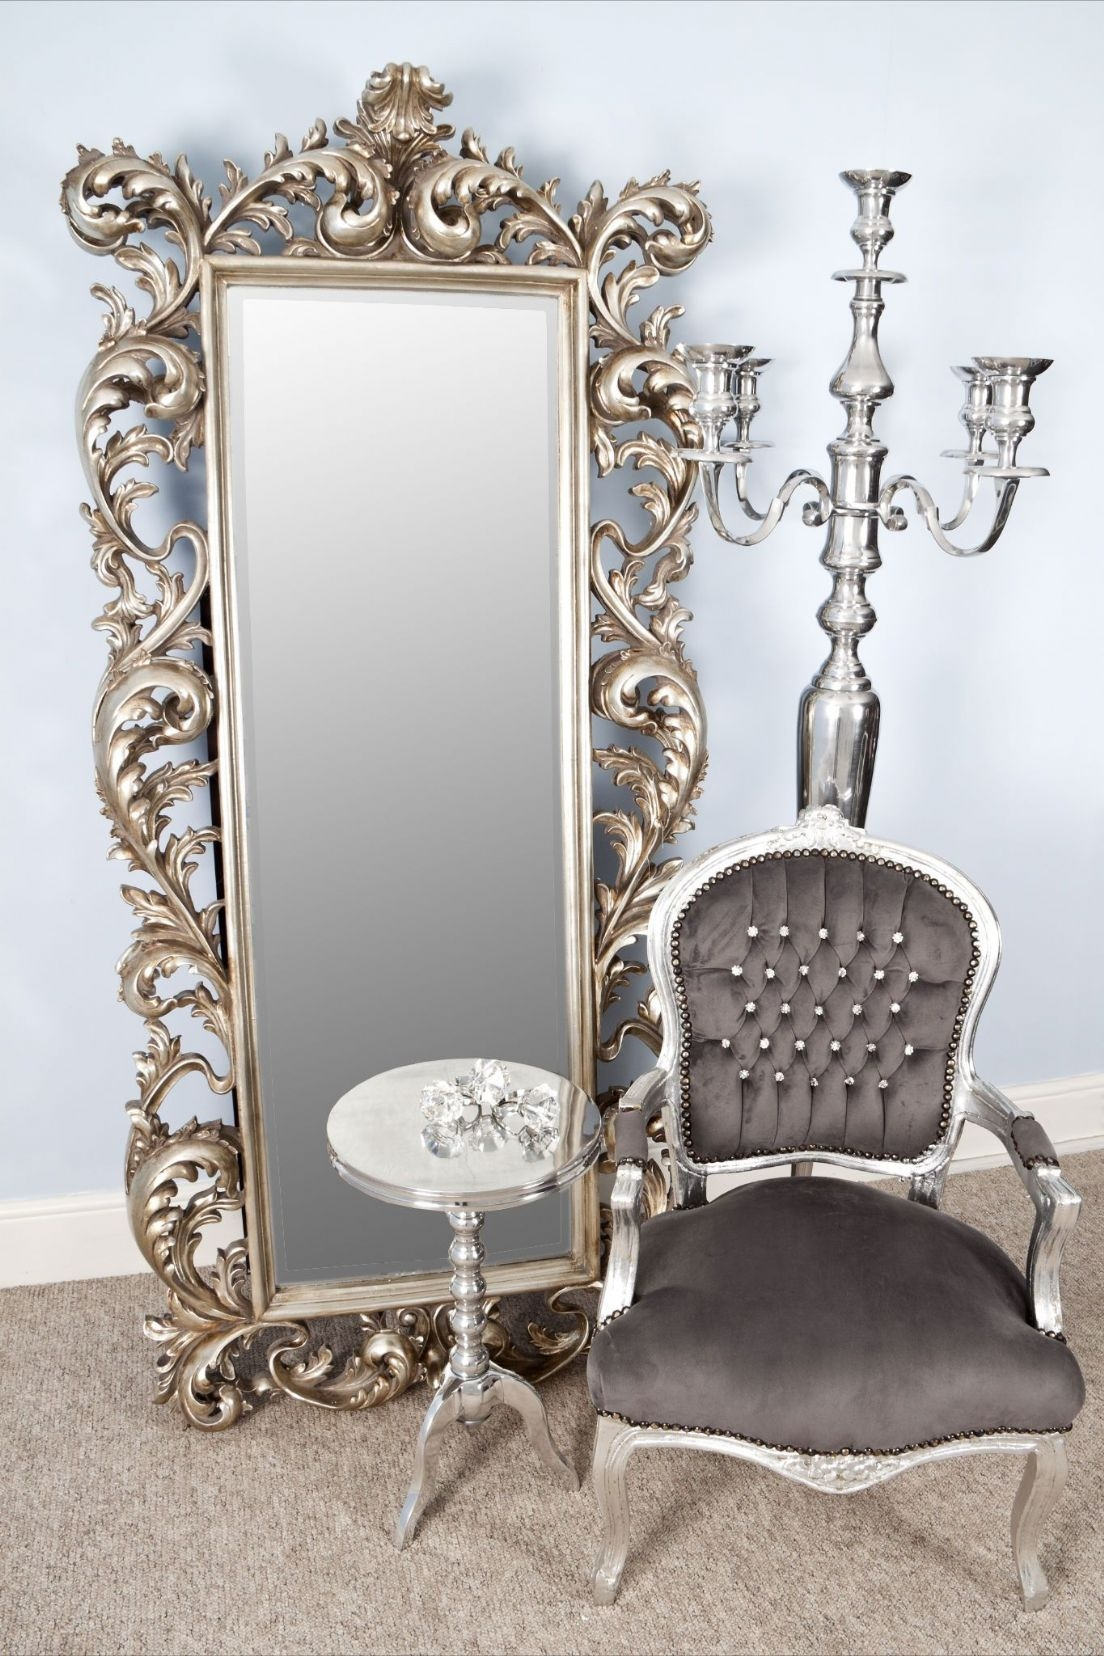 Cheval Mirrors Exclusive Mirrors Intended For Very Large Ornate Mirrors (Image 6 of 15)